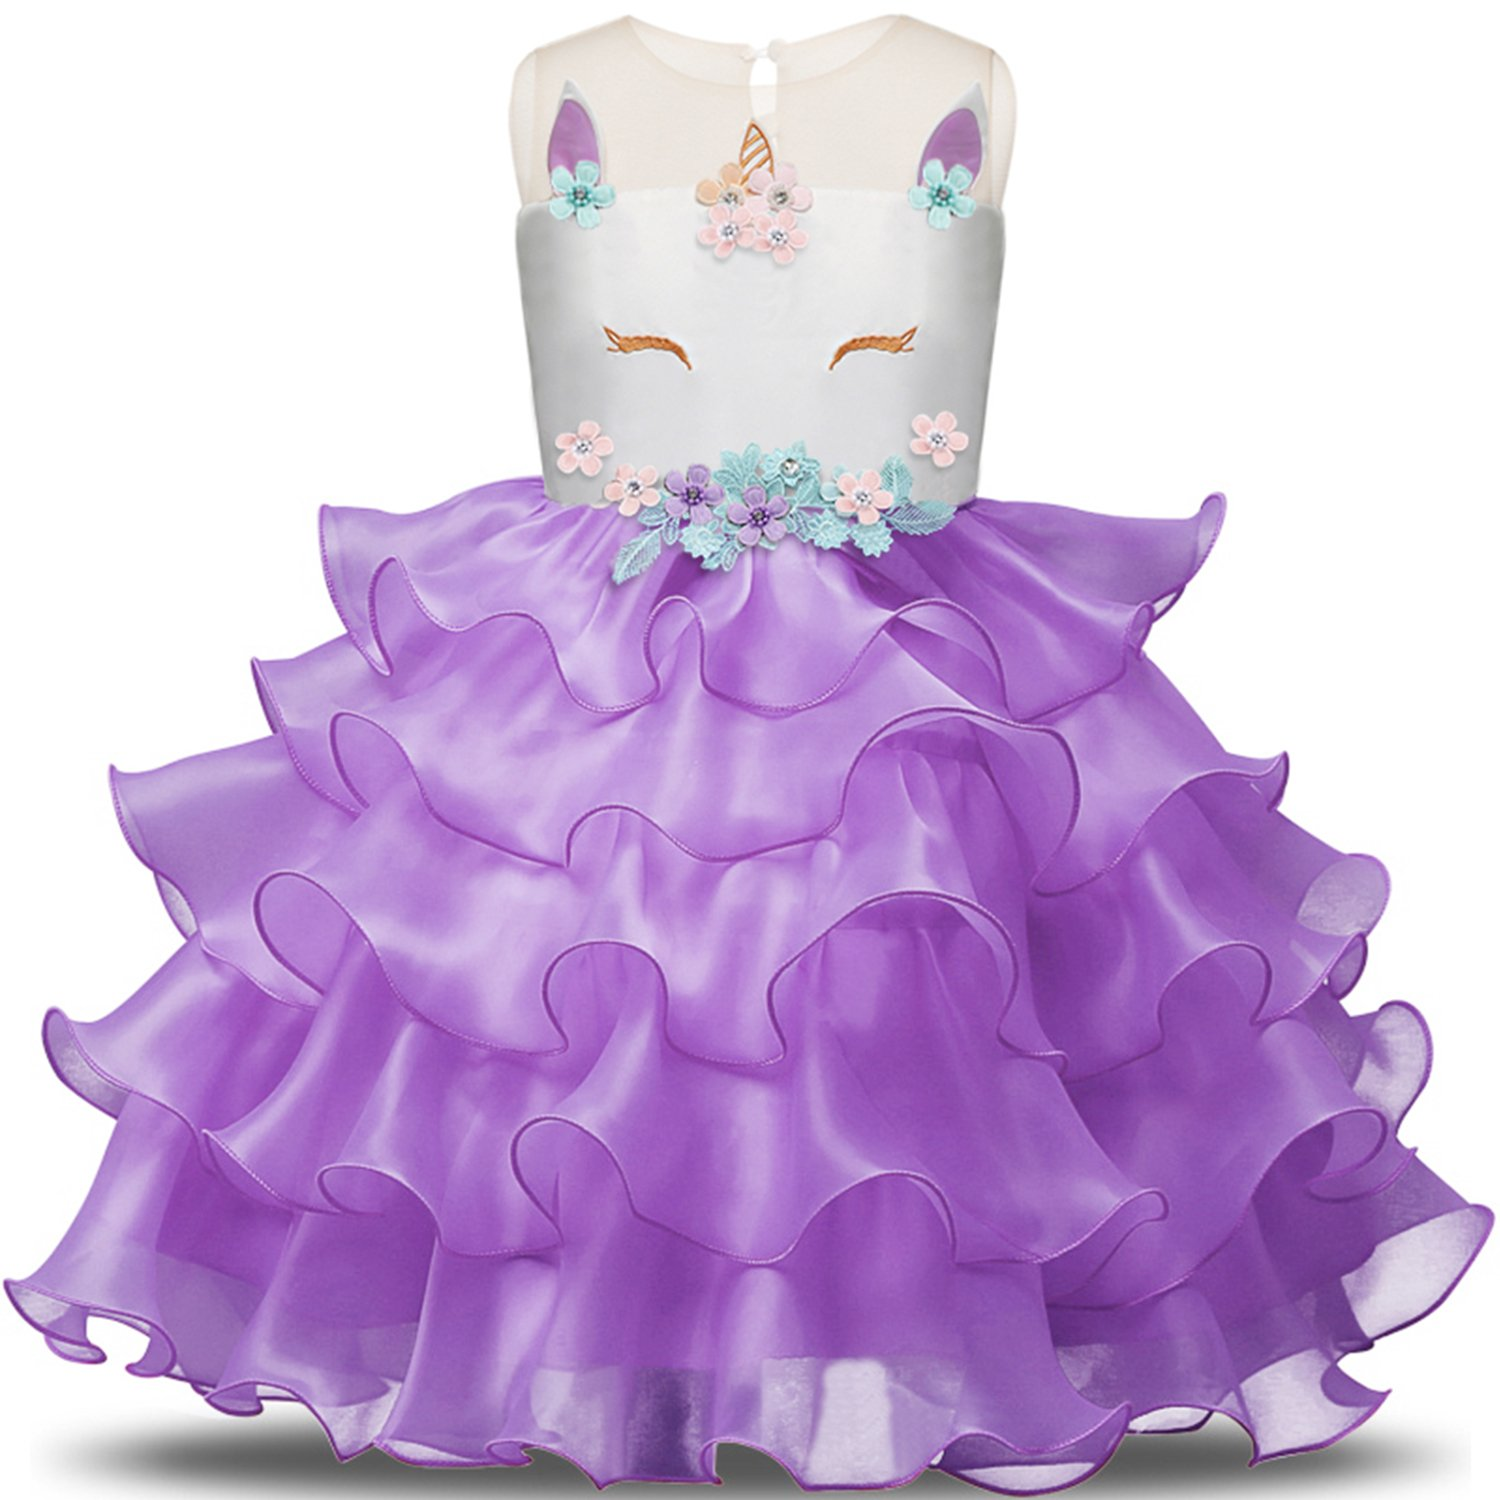 NNJXD Girl Unicorn Flower Ruffles Cosplay Costume Pageant Party Princess Dress Size (140) 6-7 Years Purple